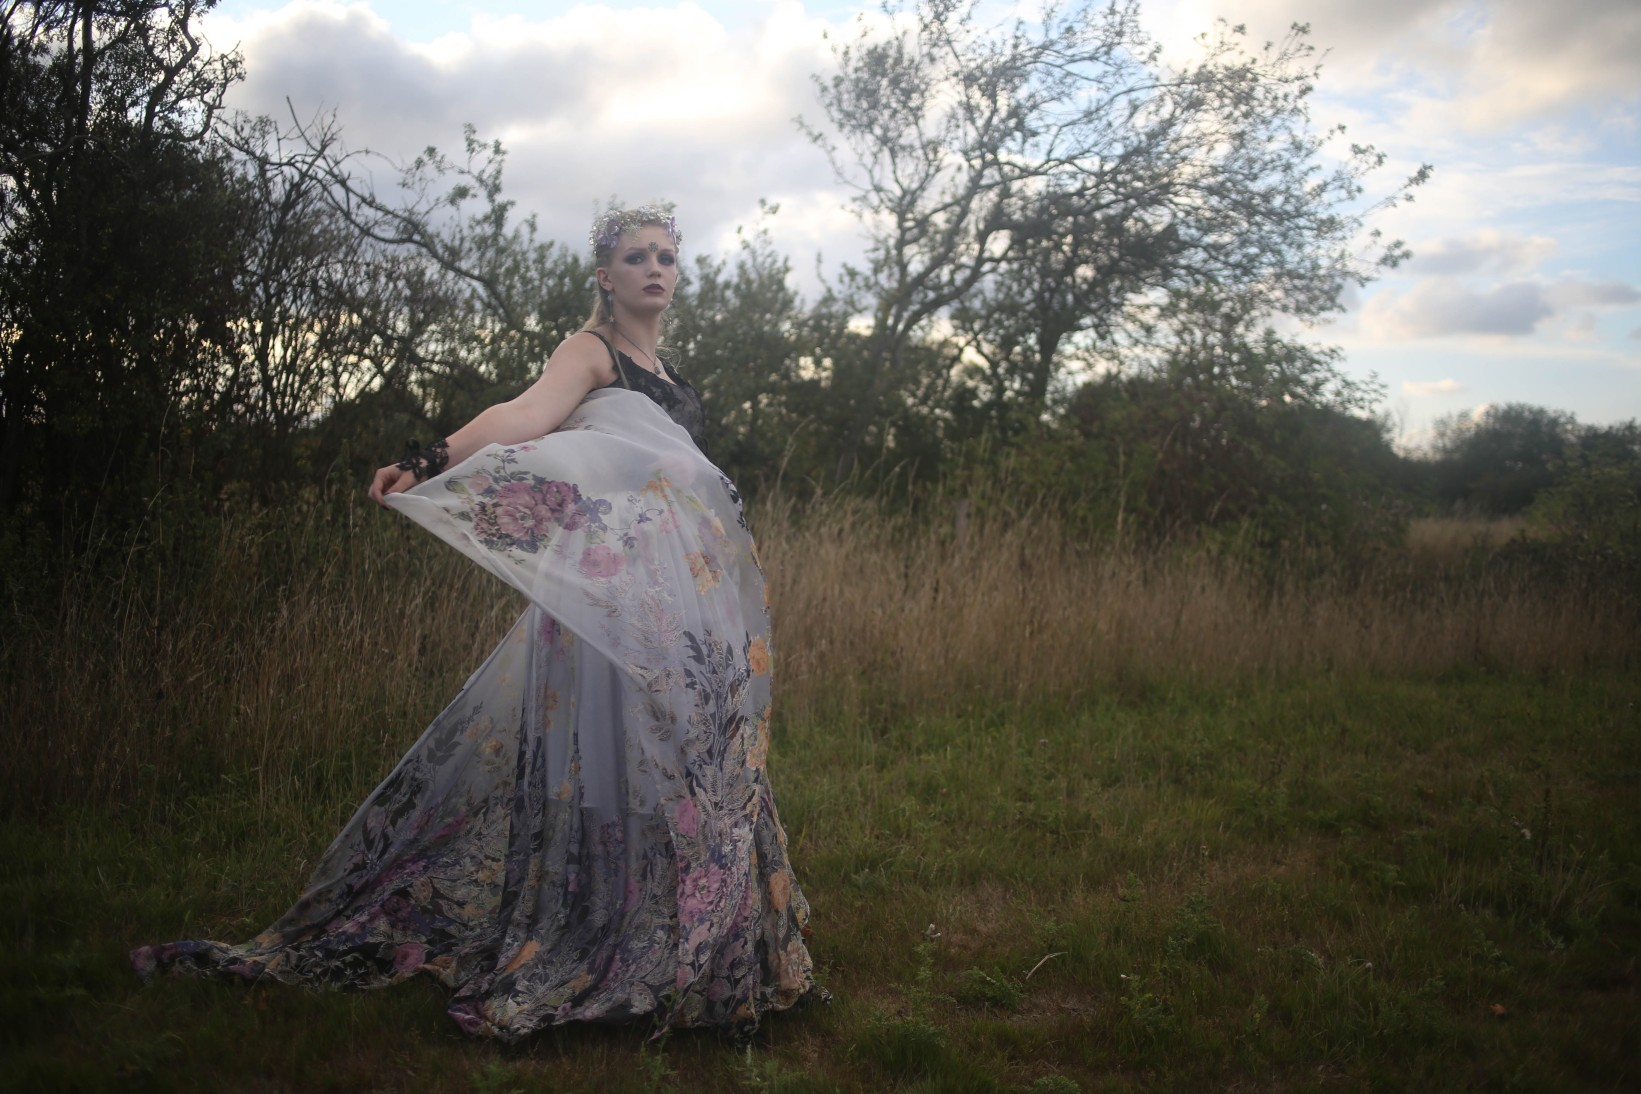 nature wedding - pagan wedding - ethereal wedding - spiritual wedding - alternative wedding - mystical wedding - quirky wedding - floral wedding dress- patterned wedding dress - patterned silk wedding dress